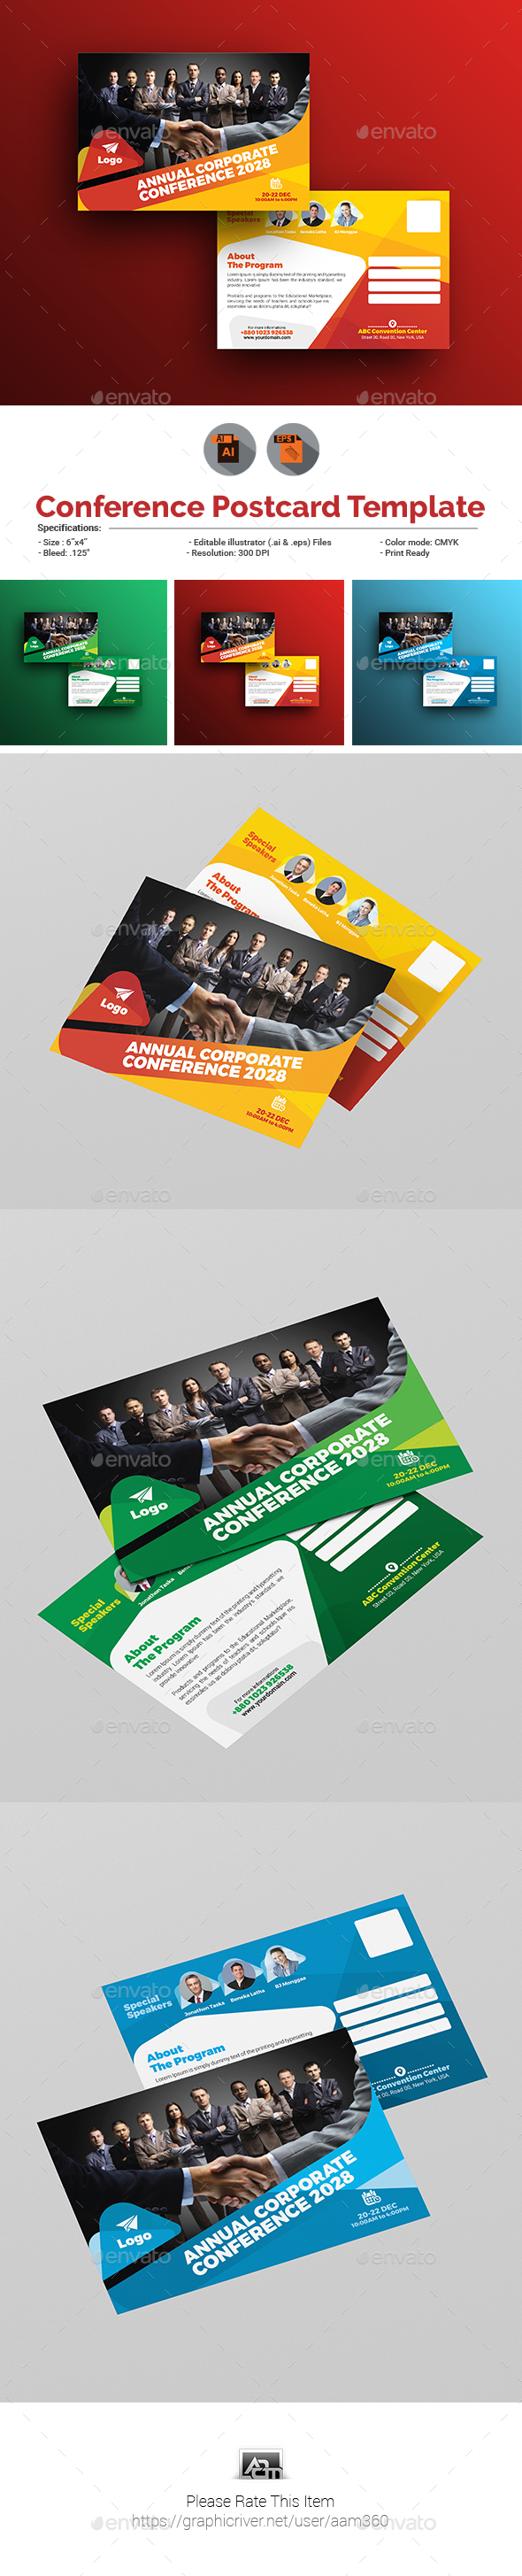 Annual Corporate Conference Postcard - Cards & Invites Print Templates